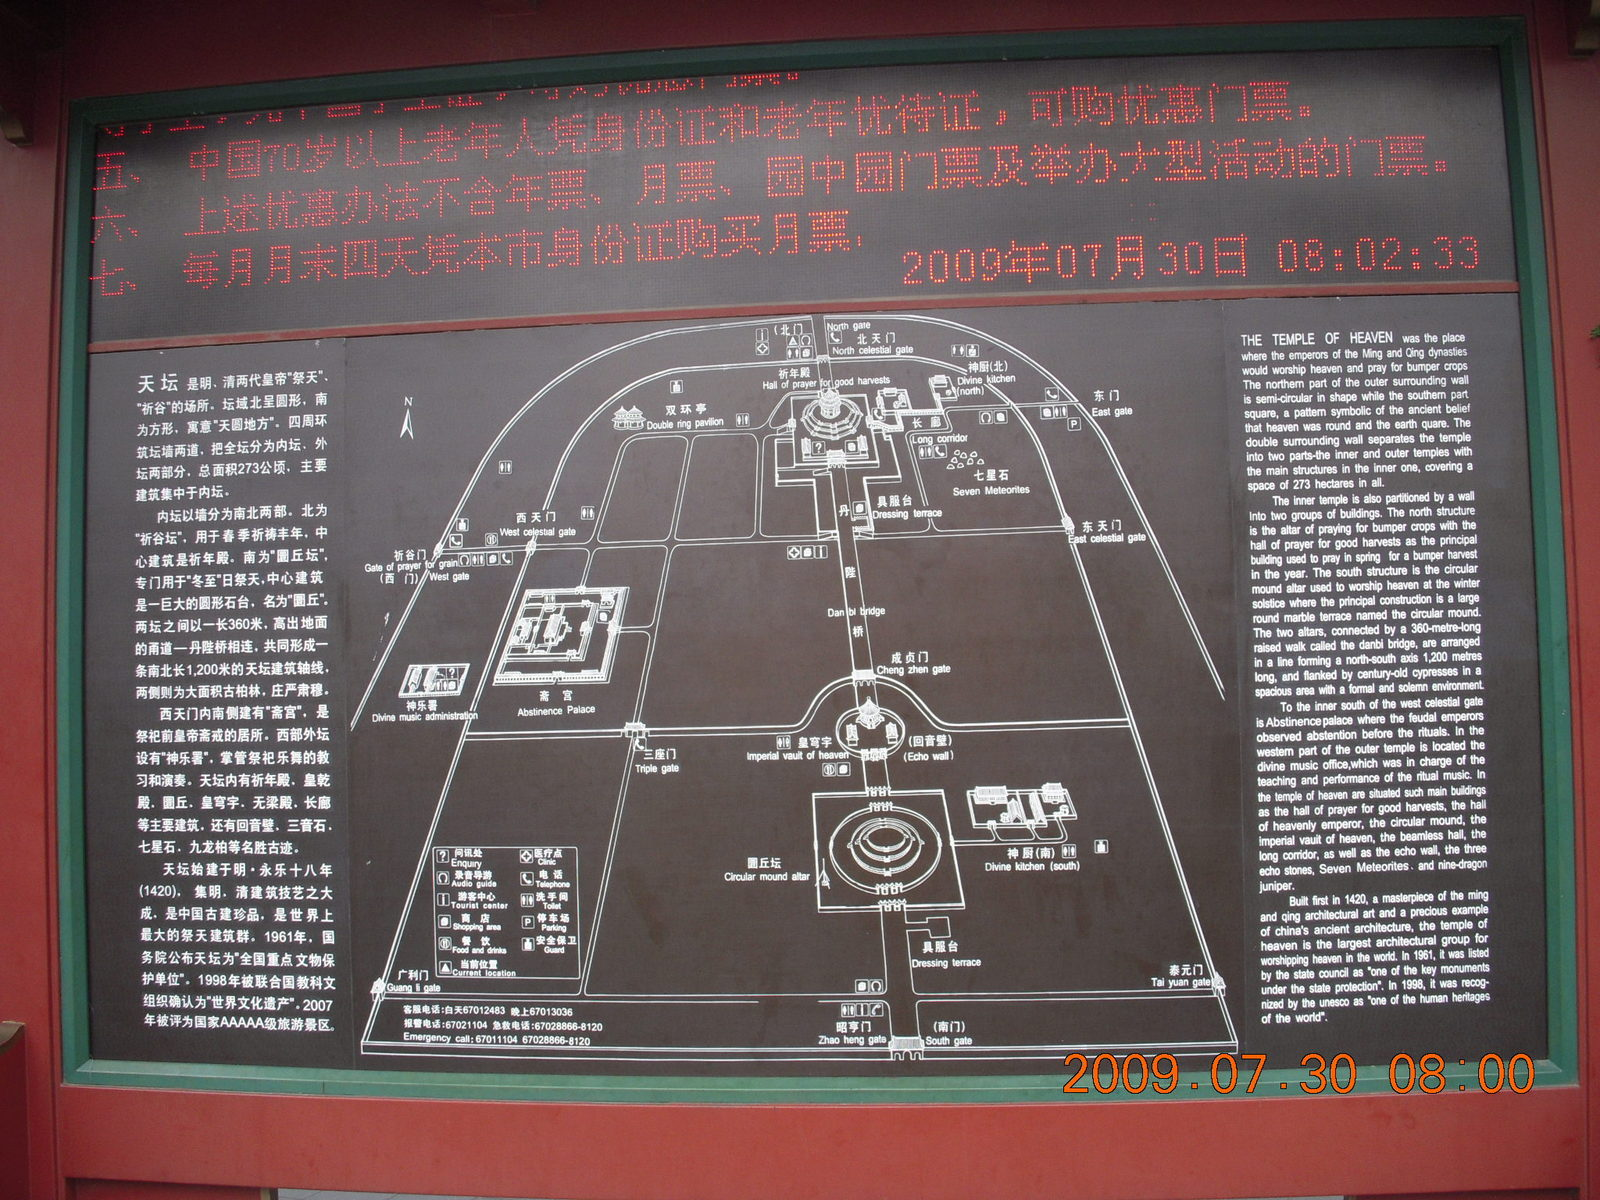 China eclipse - Beijing - Temple of Heaven map